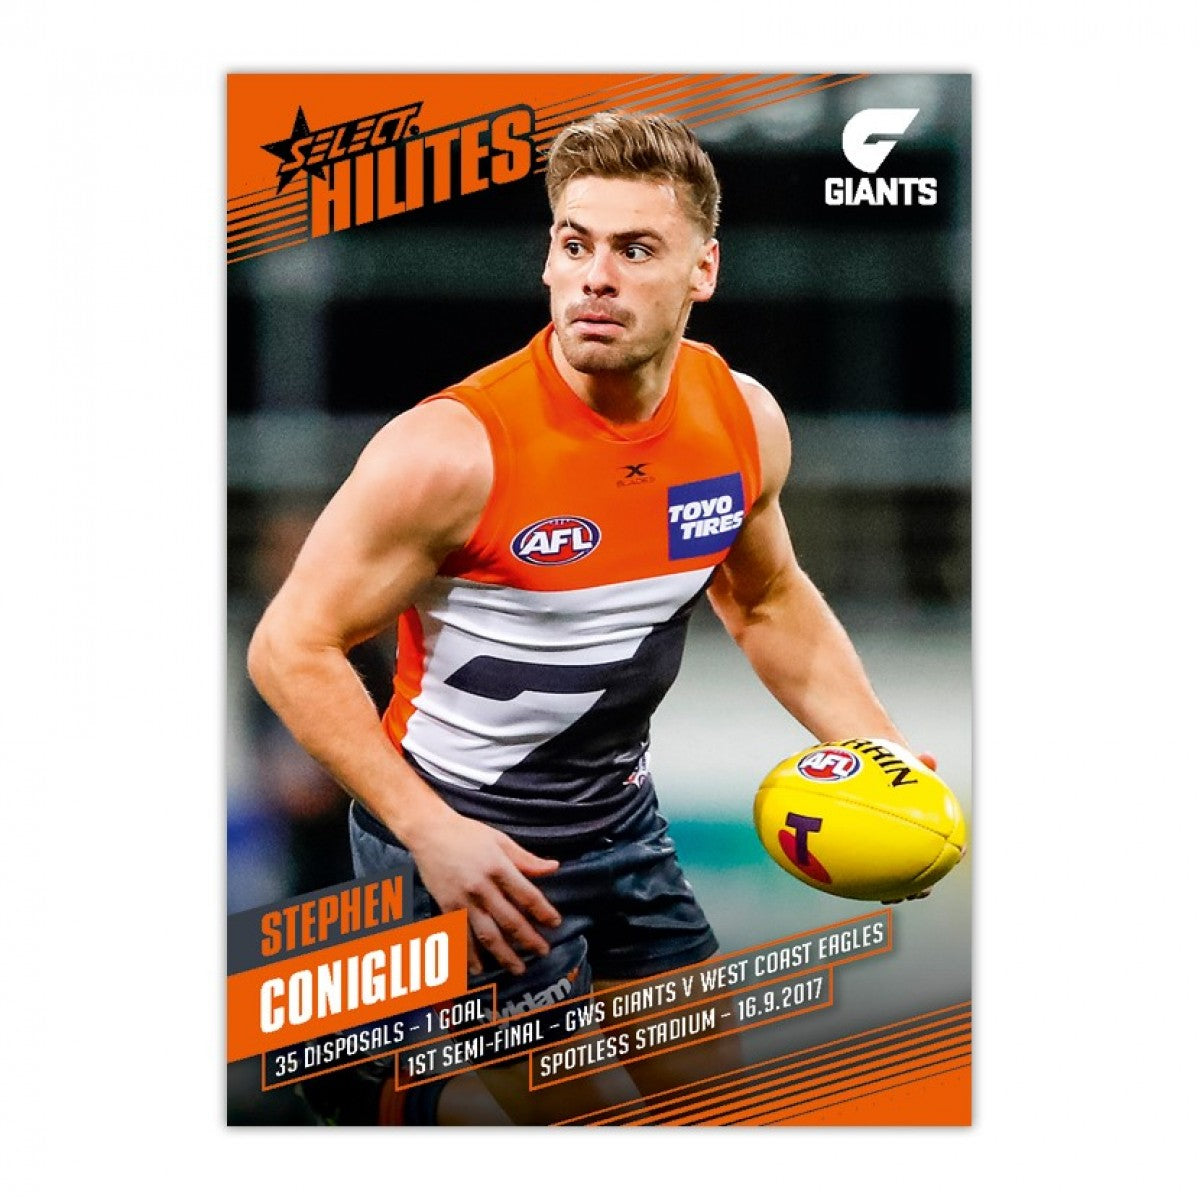 1ST SEMI FINAL - STEPHEN CONIGLIO GWS